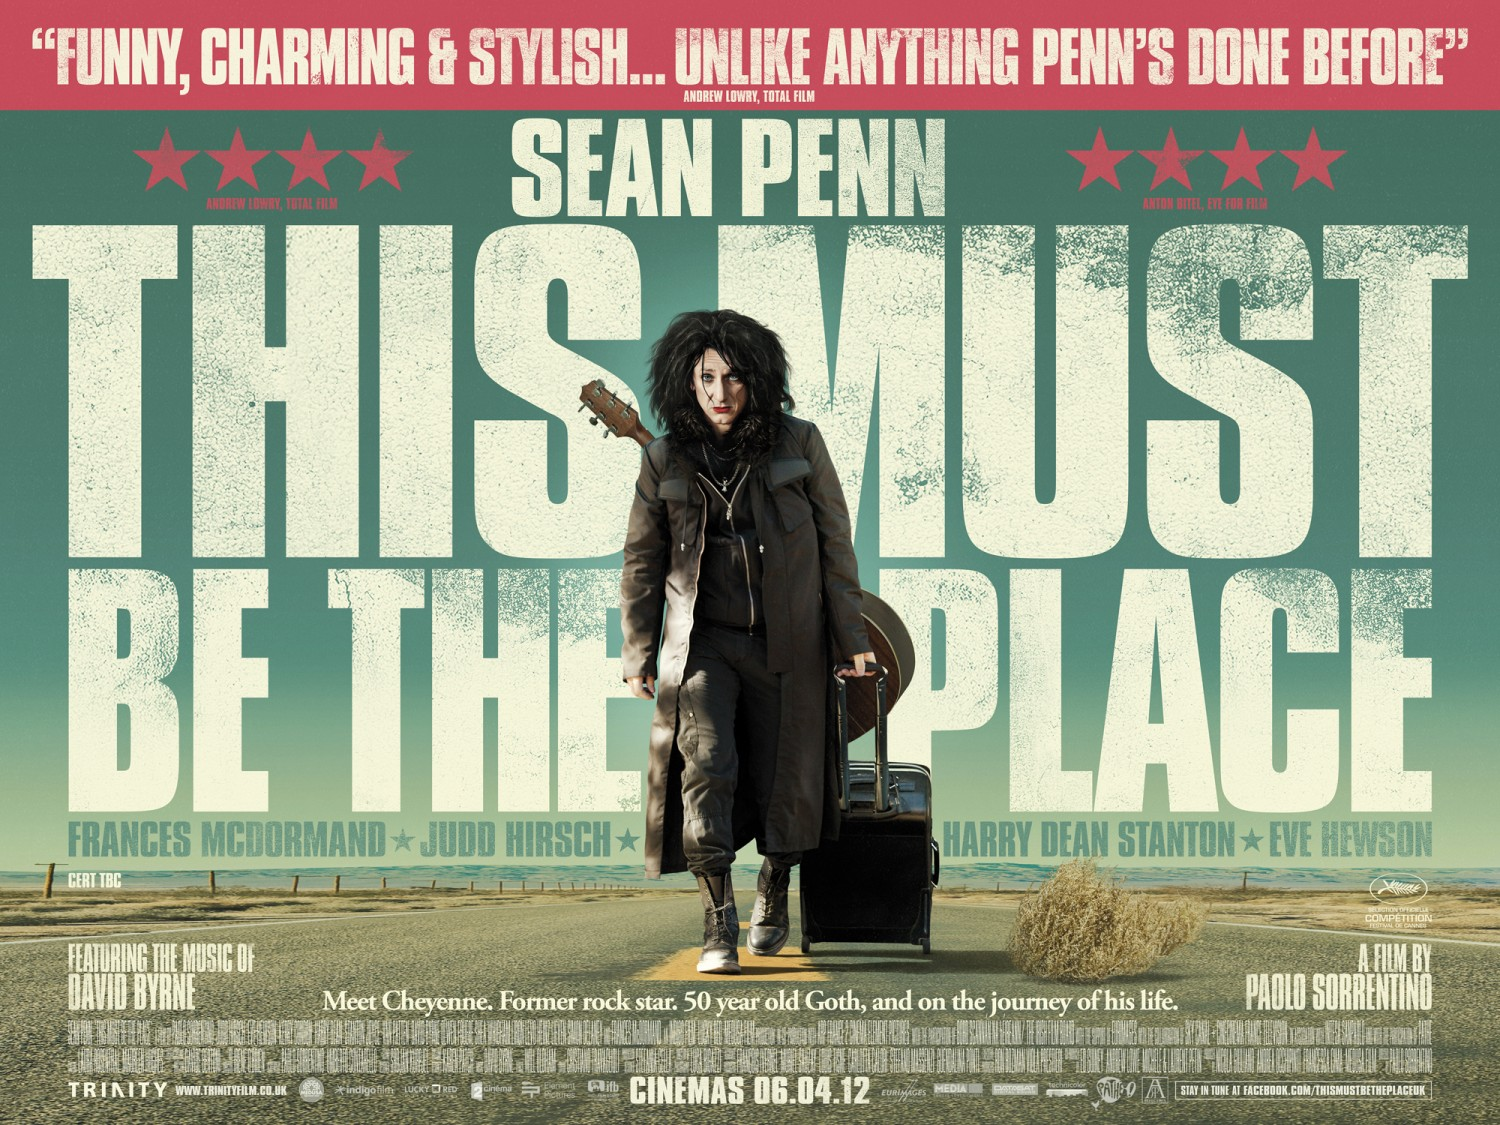 http://1.bp.blogspot.com/-gkC69nb4KGE/UDA6irC-12I/AAAAAAAAoEw/6dITkM_zffw/s1600/this-must-be-the-place-movie-poster-31.jpg